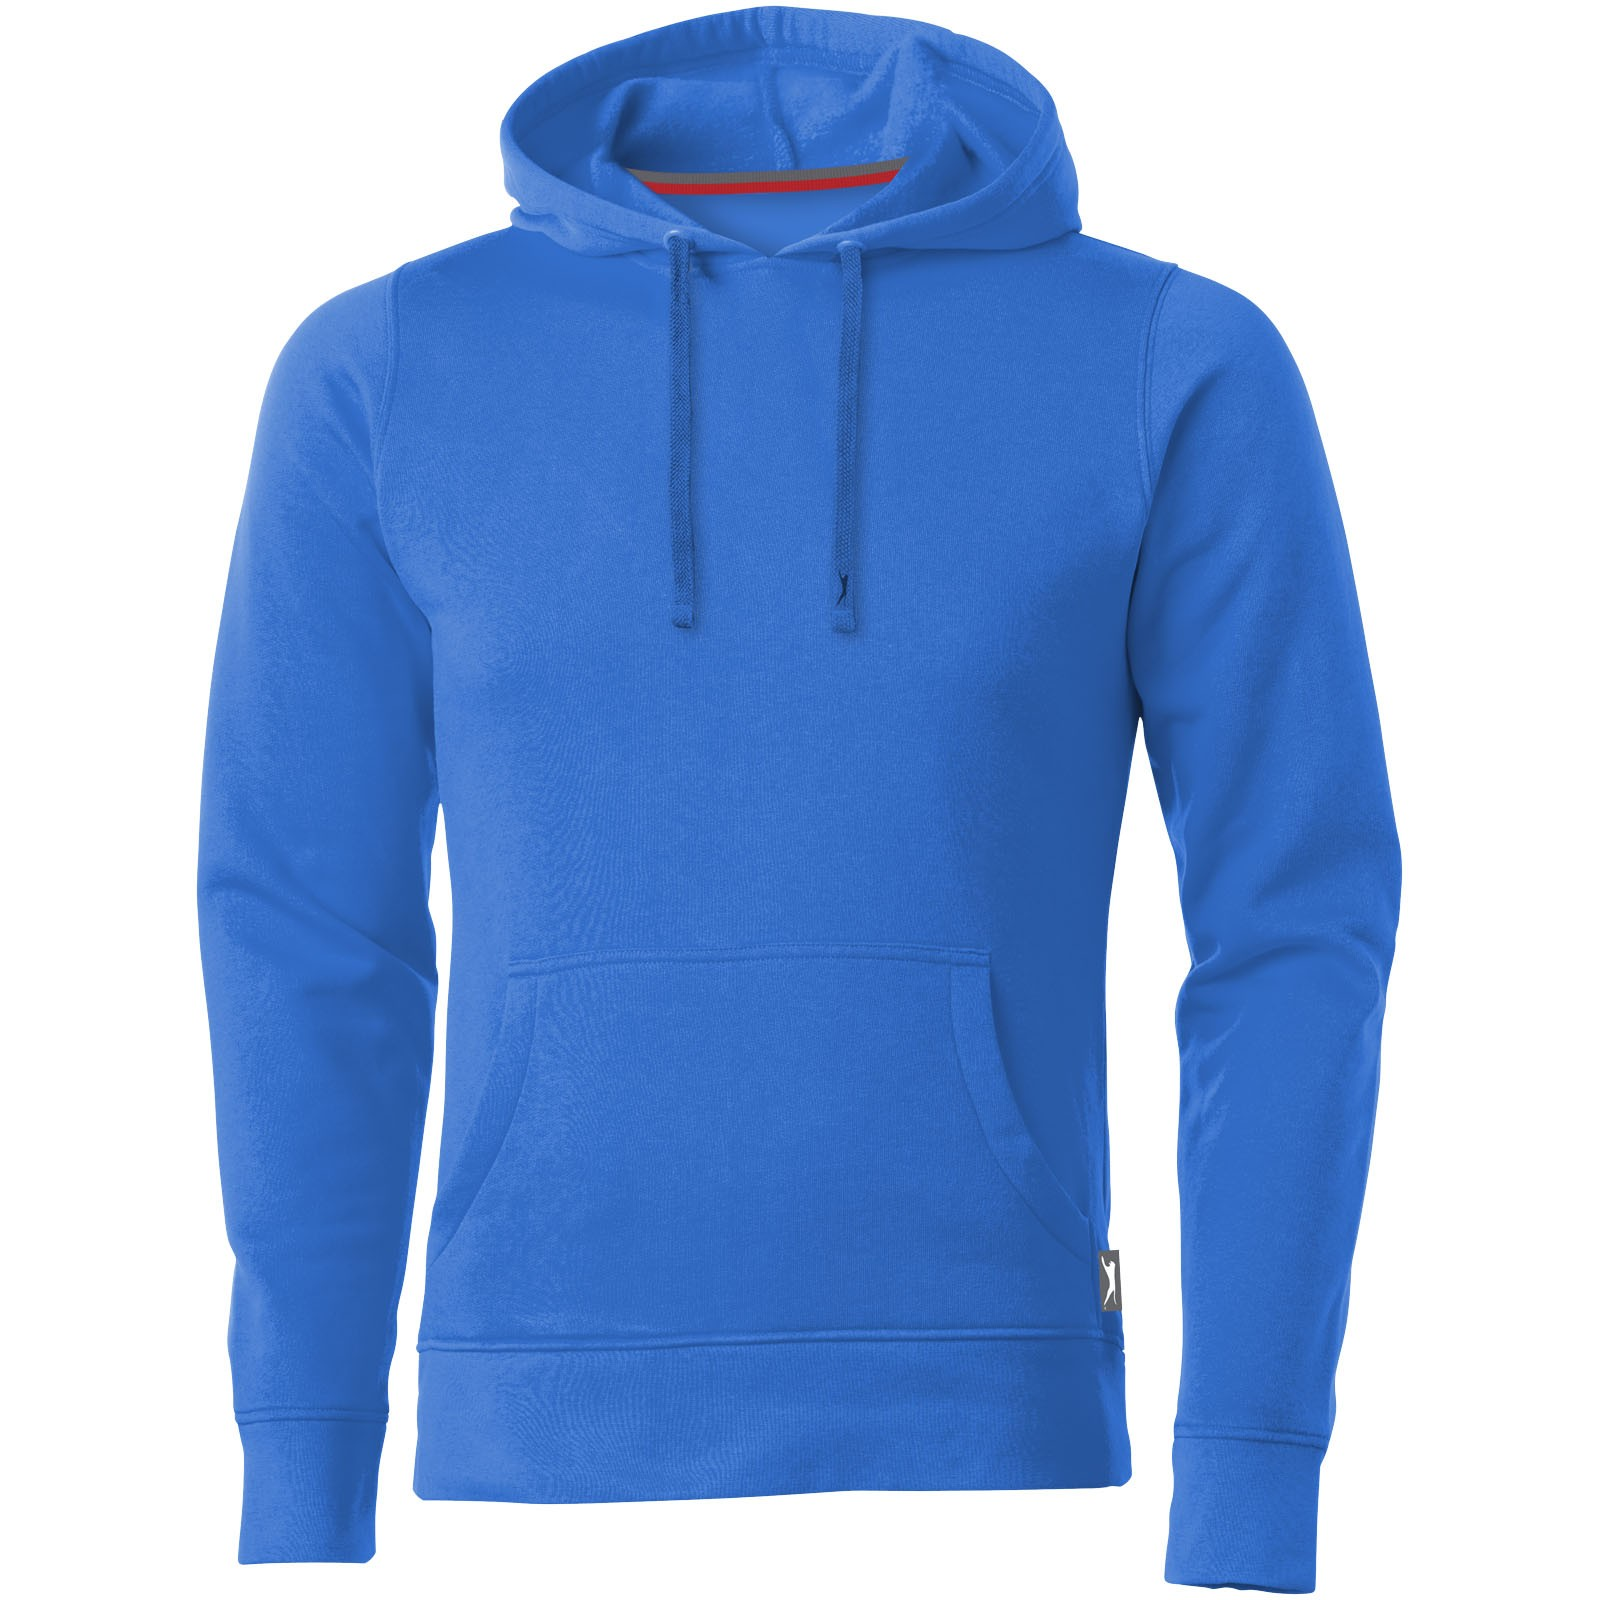 Alley hooded sweater - Sky blue / M